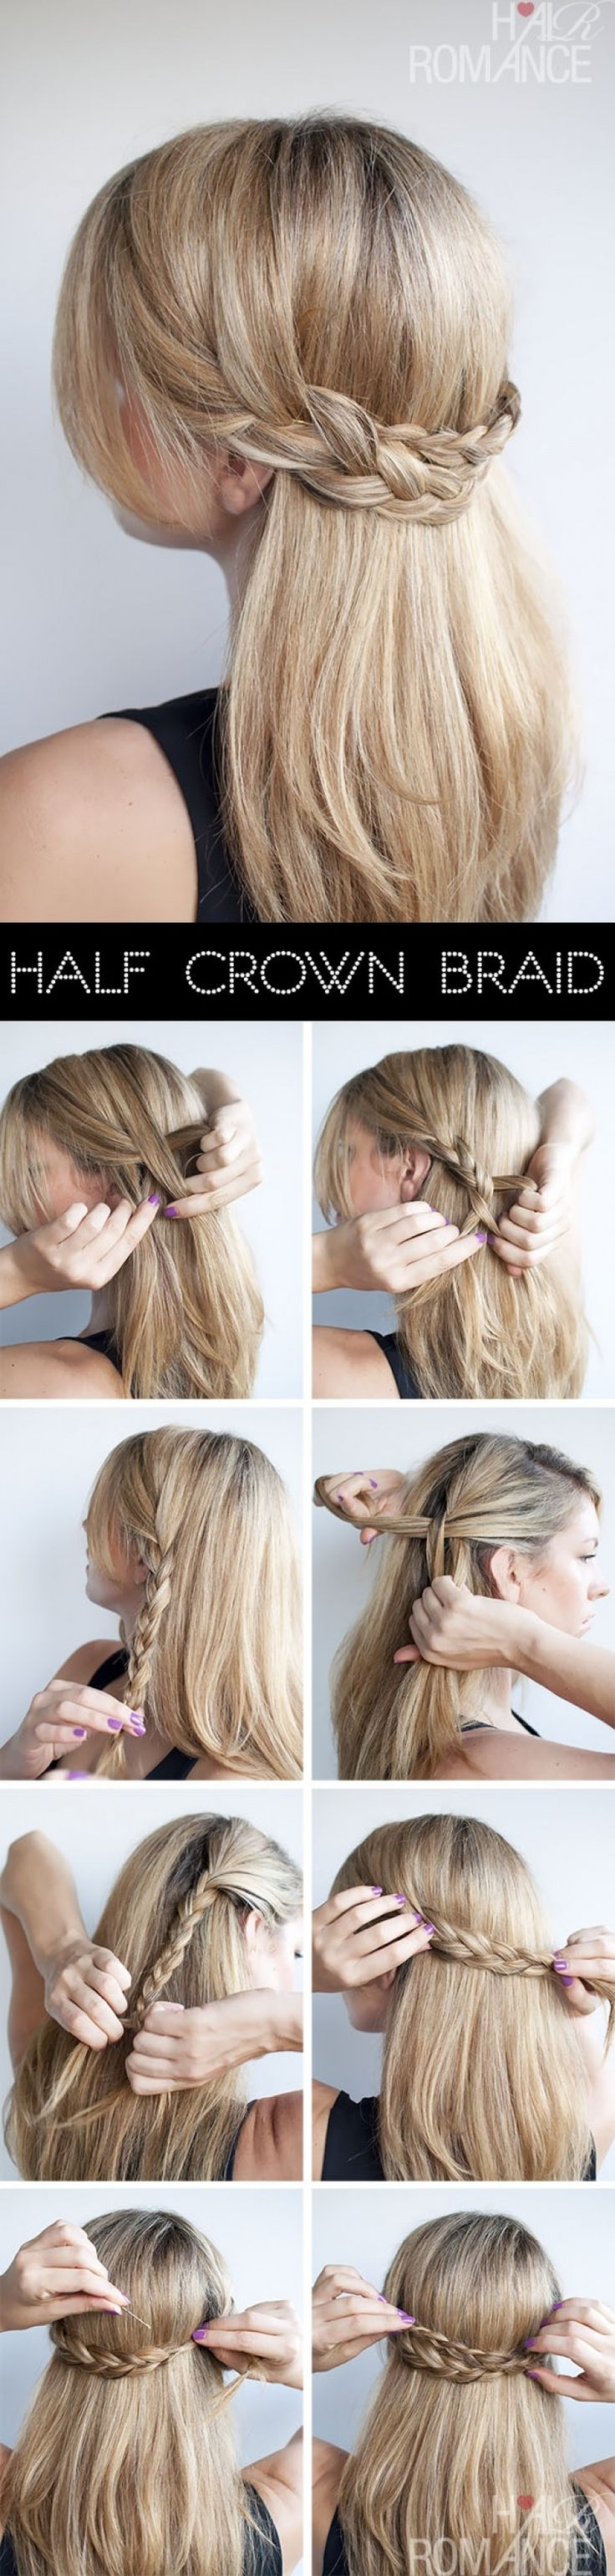 16 Super Straightforward Hairstyles To Make On Your Personal | Pinkous